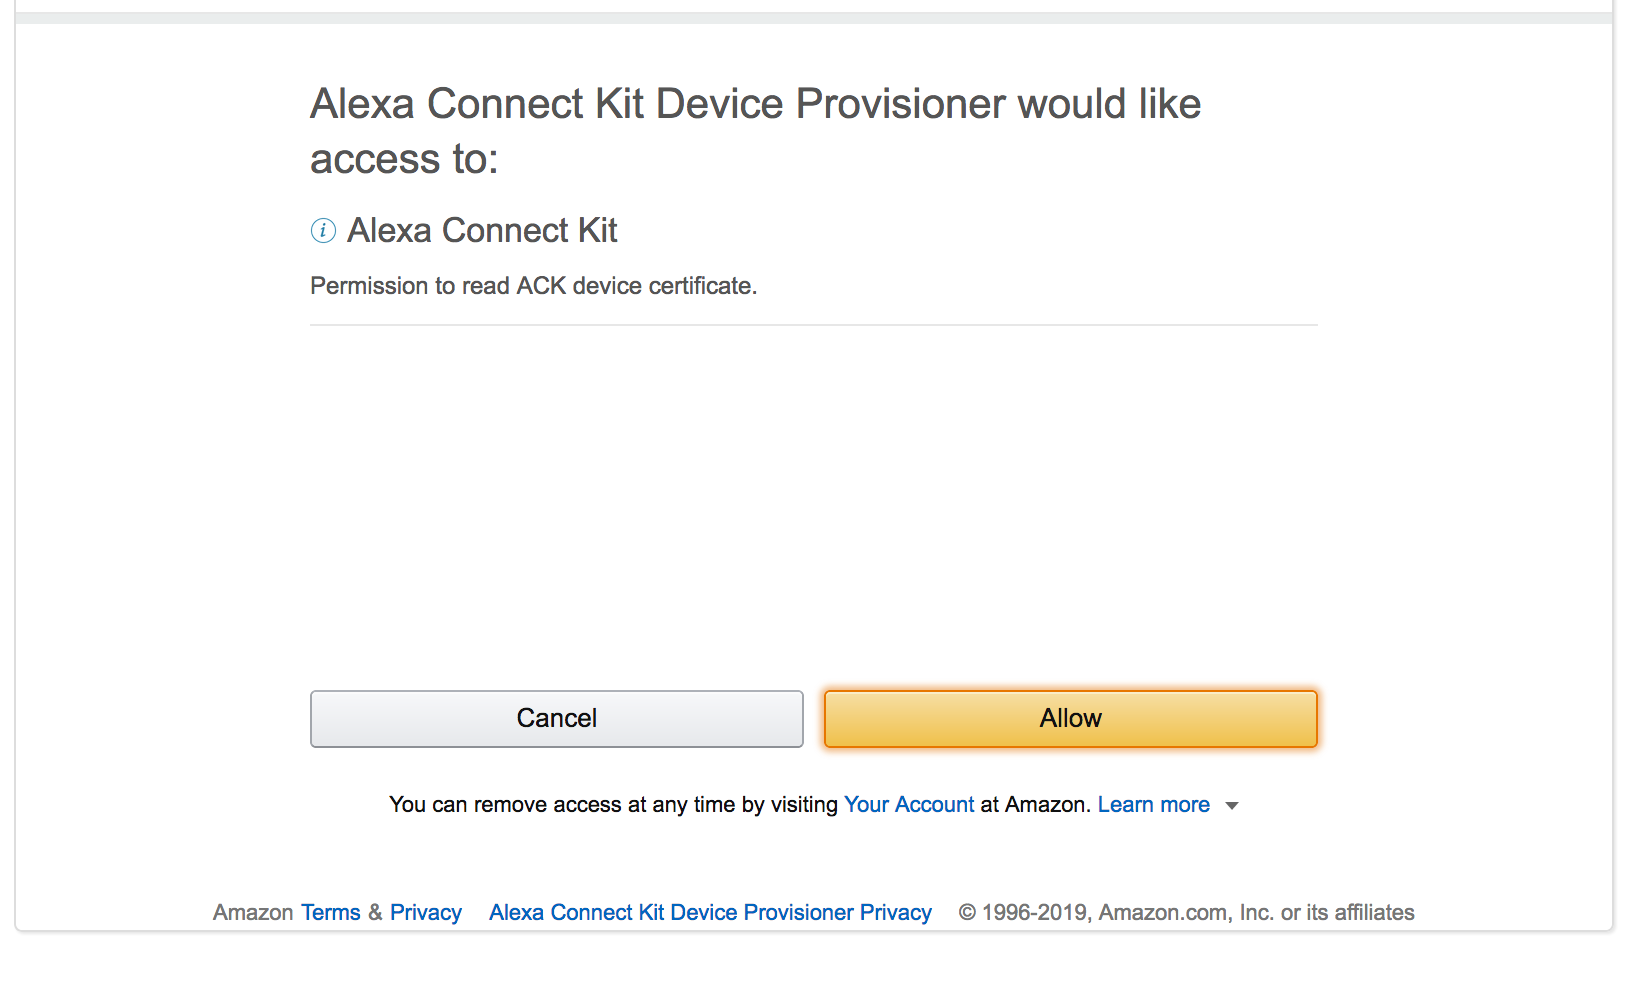 Grant the Alexa Connect Kit device provisioner permission to read the device certificate.